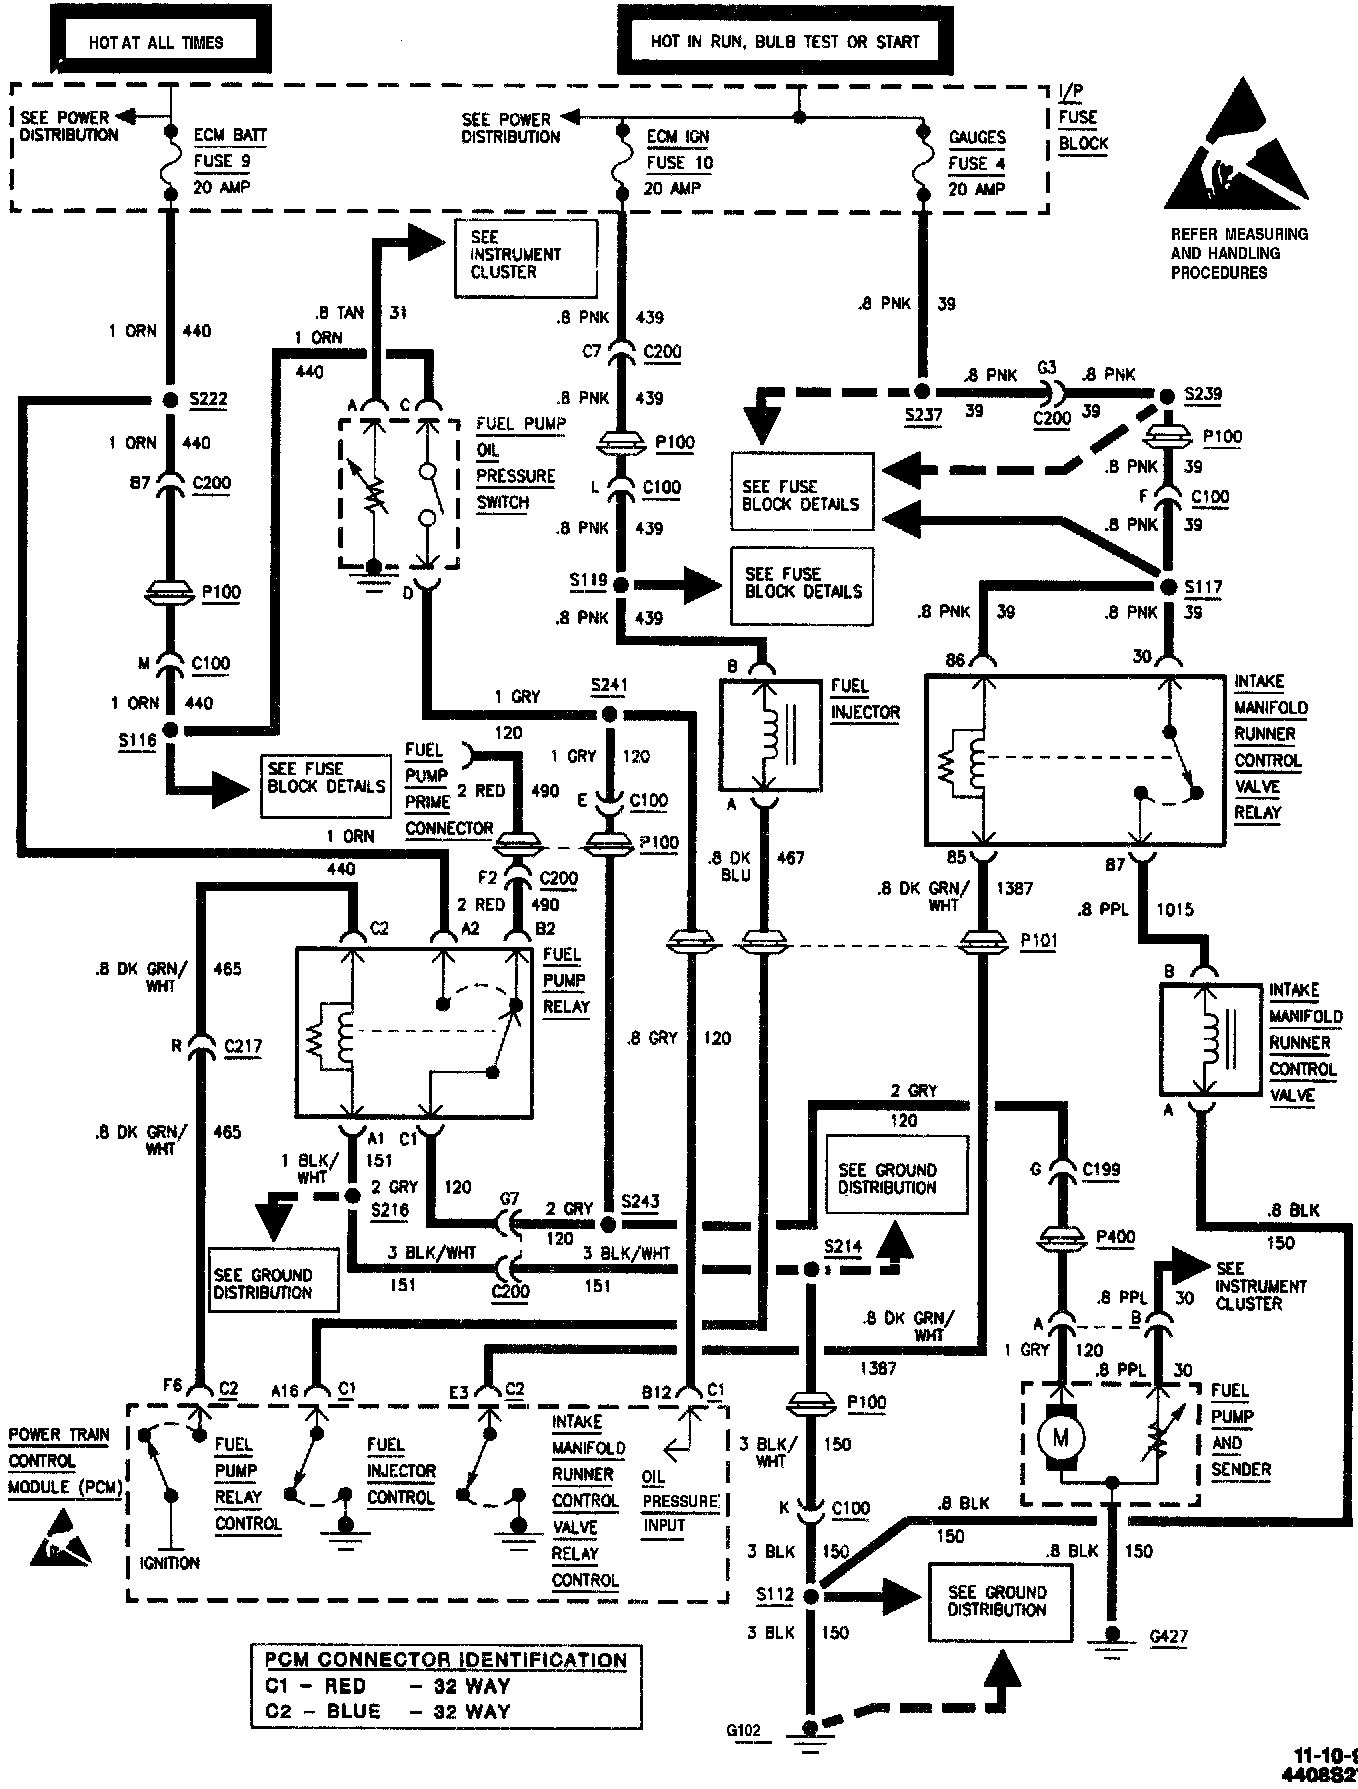 heater schematic on 2002 chevy s10